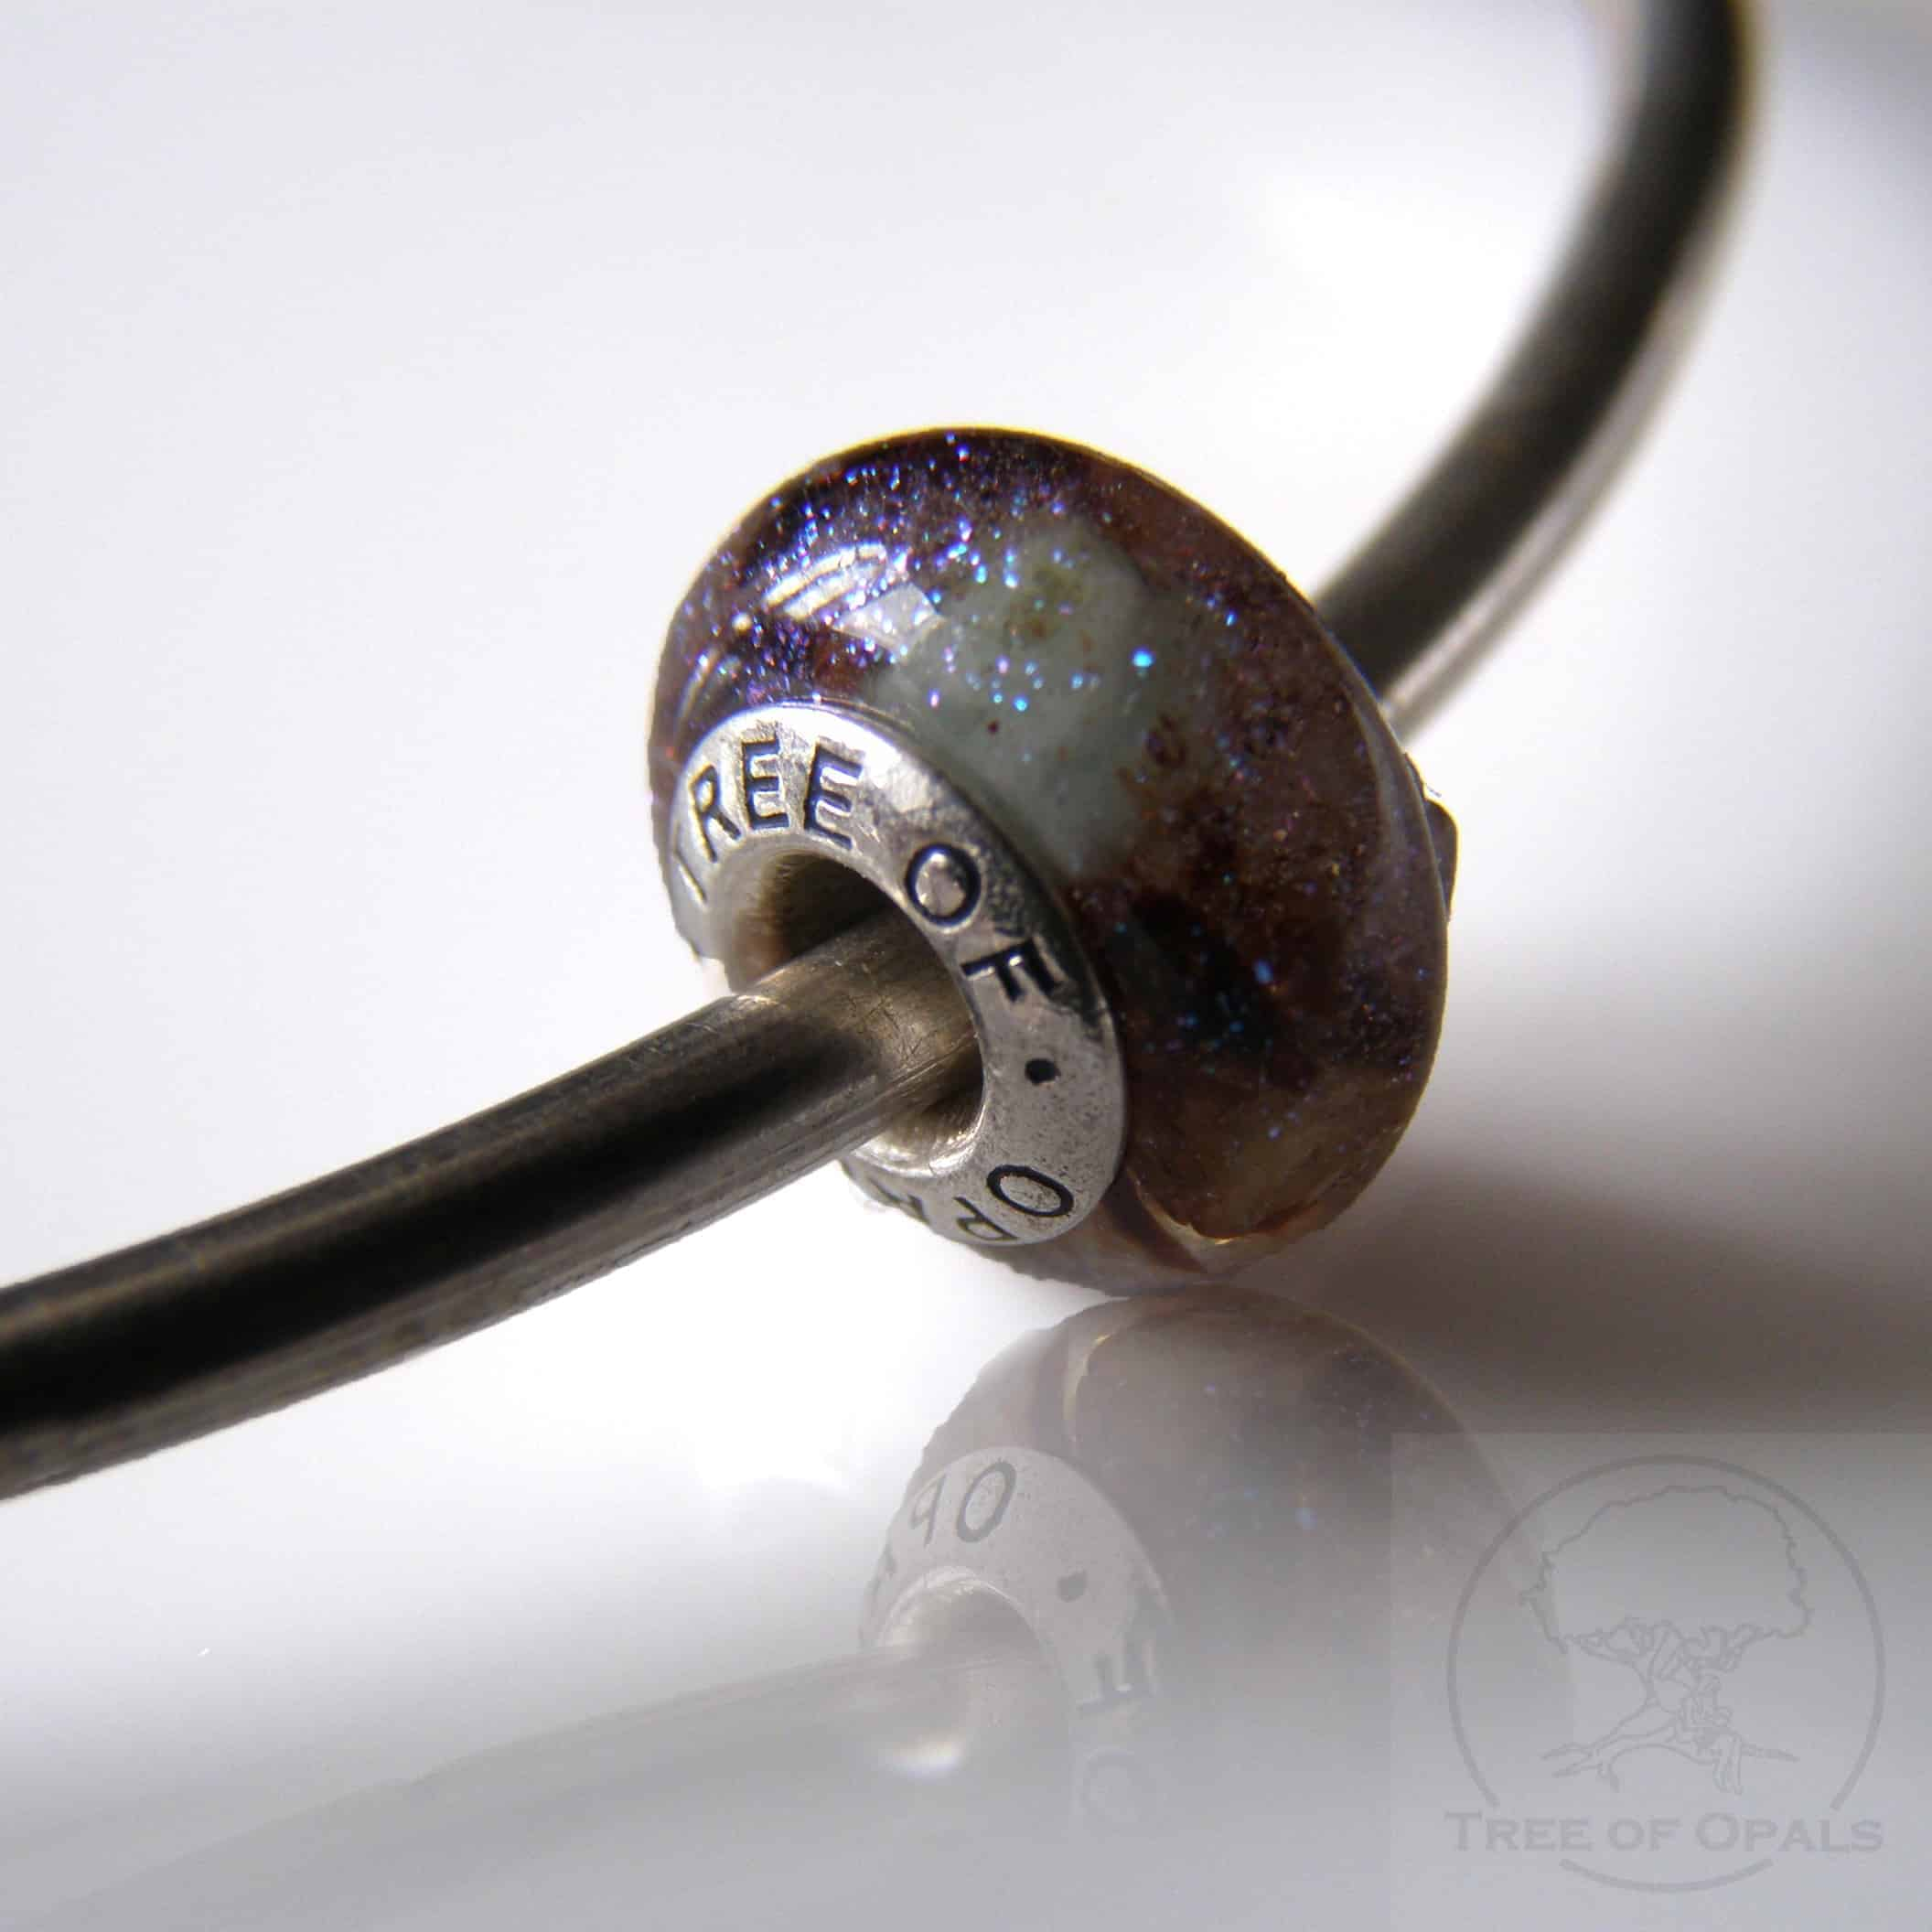 Umbilical cord charm that fits right onto Pandora bracelets, featuring irridescent sparkles and natural emerald